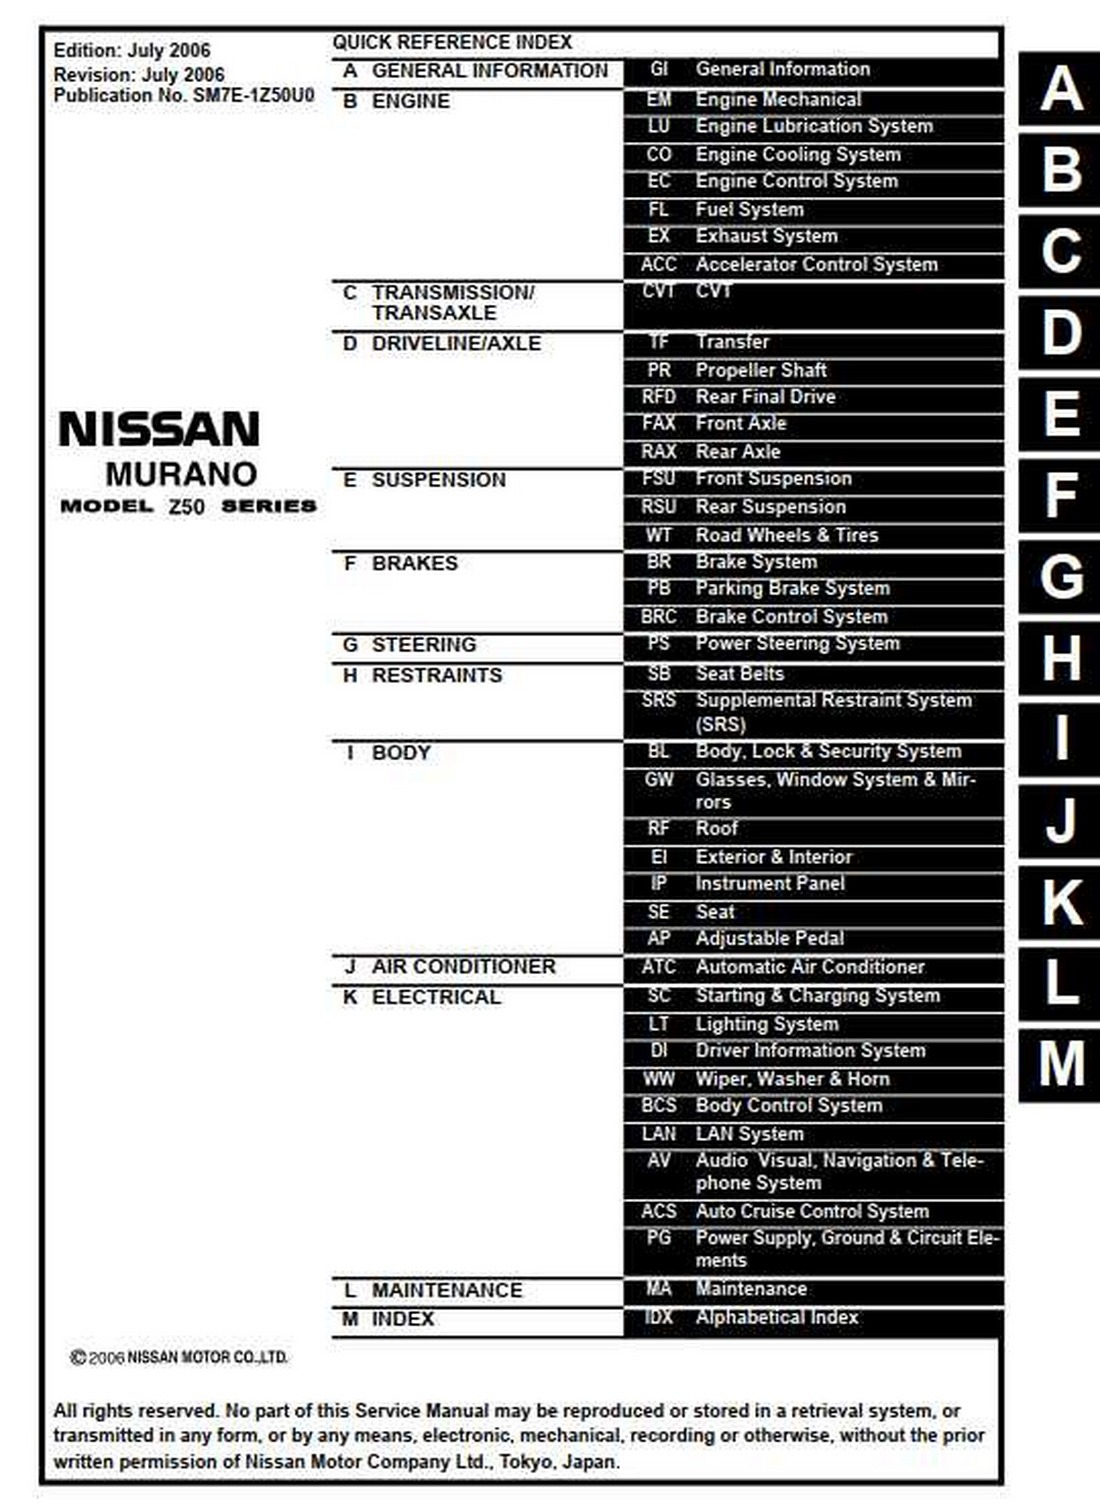 Nissan Murano Model Z50 Series Service Manual